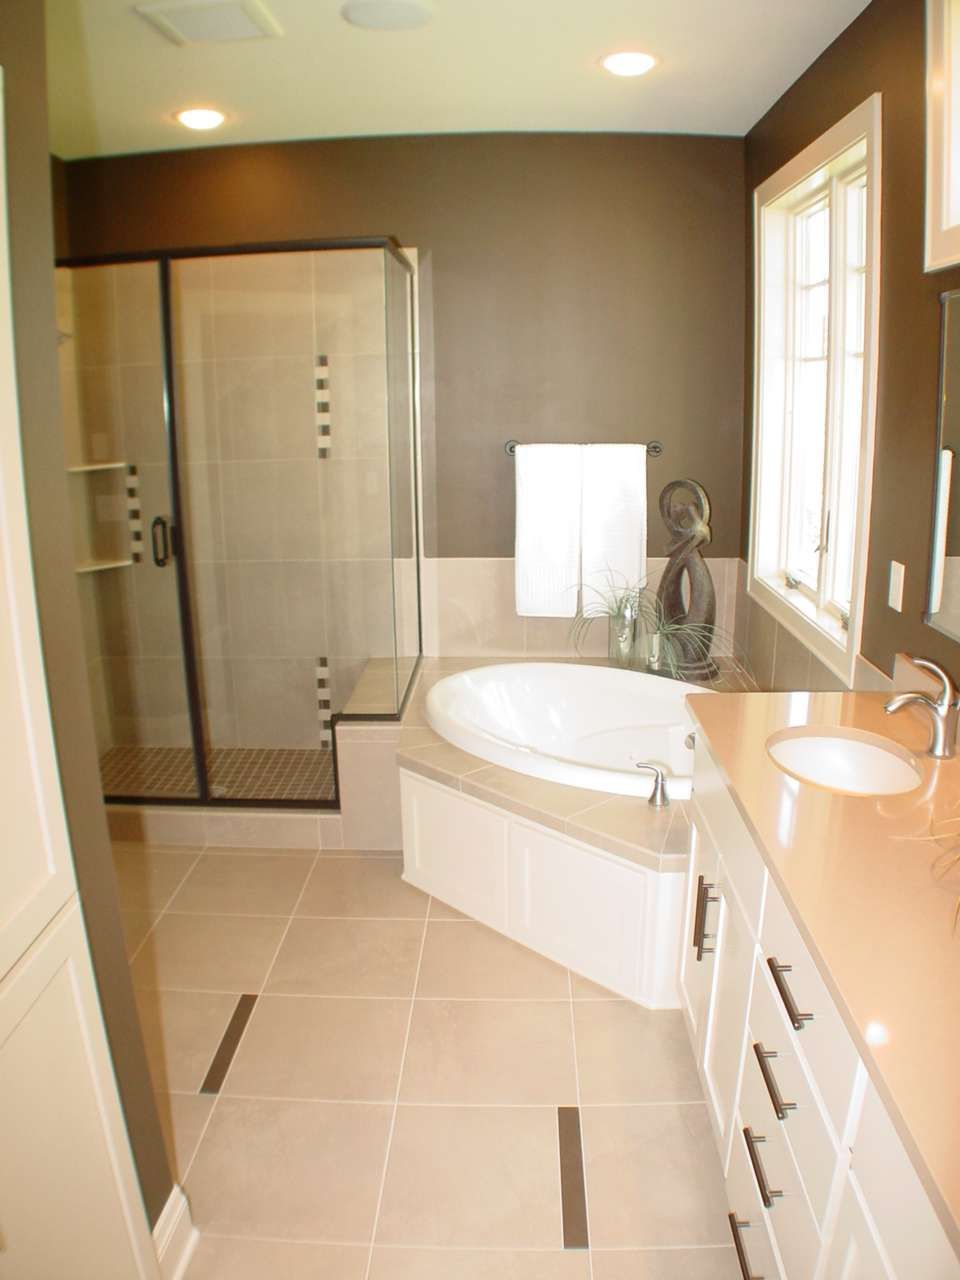 Bathroom Remodeling Edina Mn 17 best images about bathroom remodeling hastings, edina, st. paul